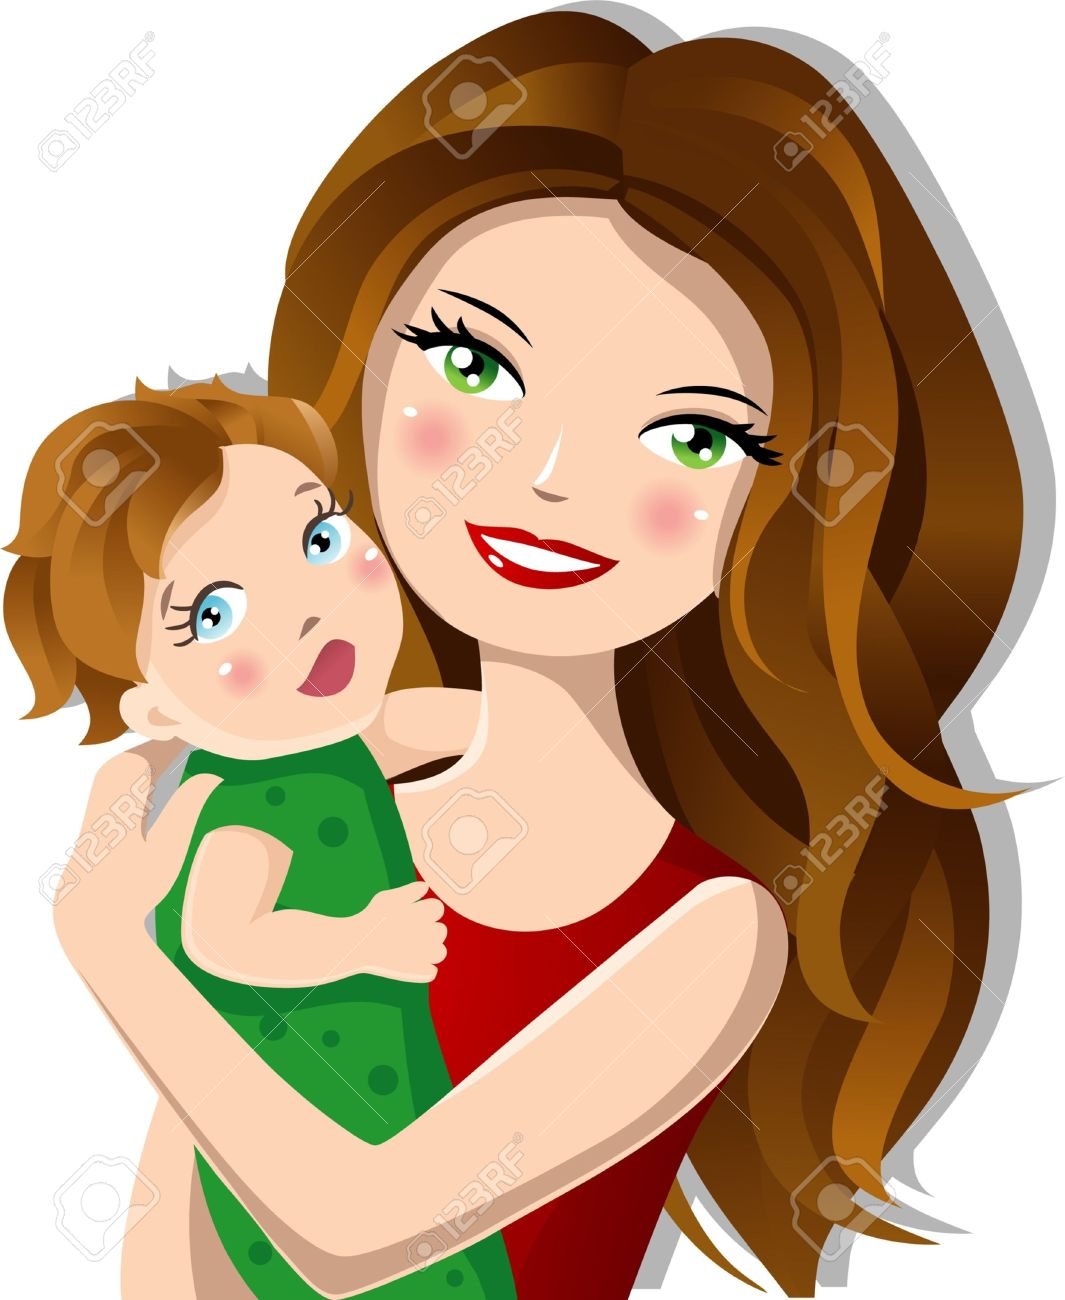 Mommy clipart mom newborn Images Clipart Free Clipart Mother